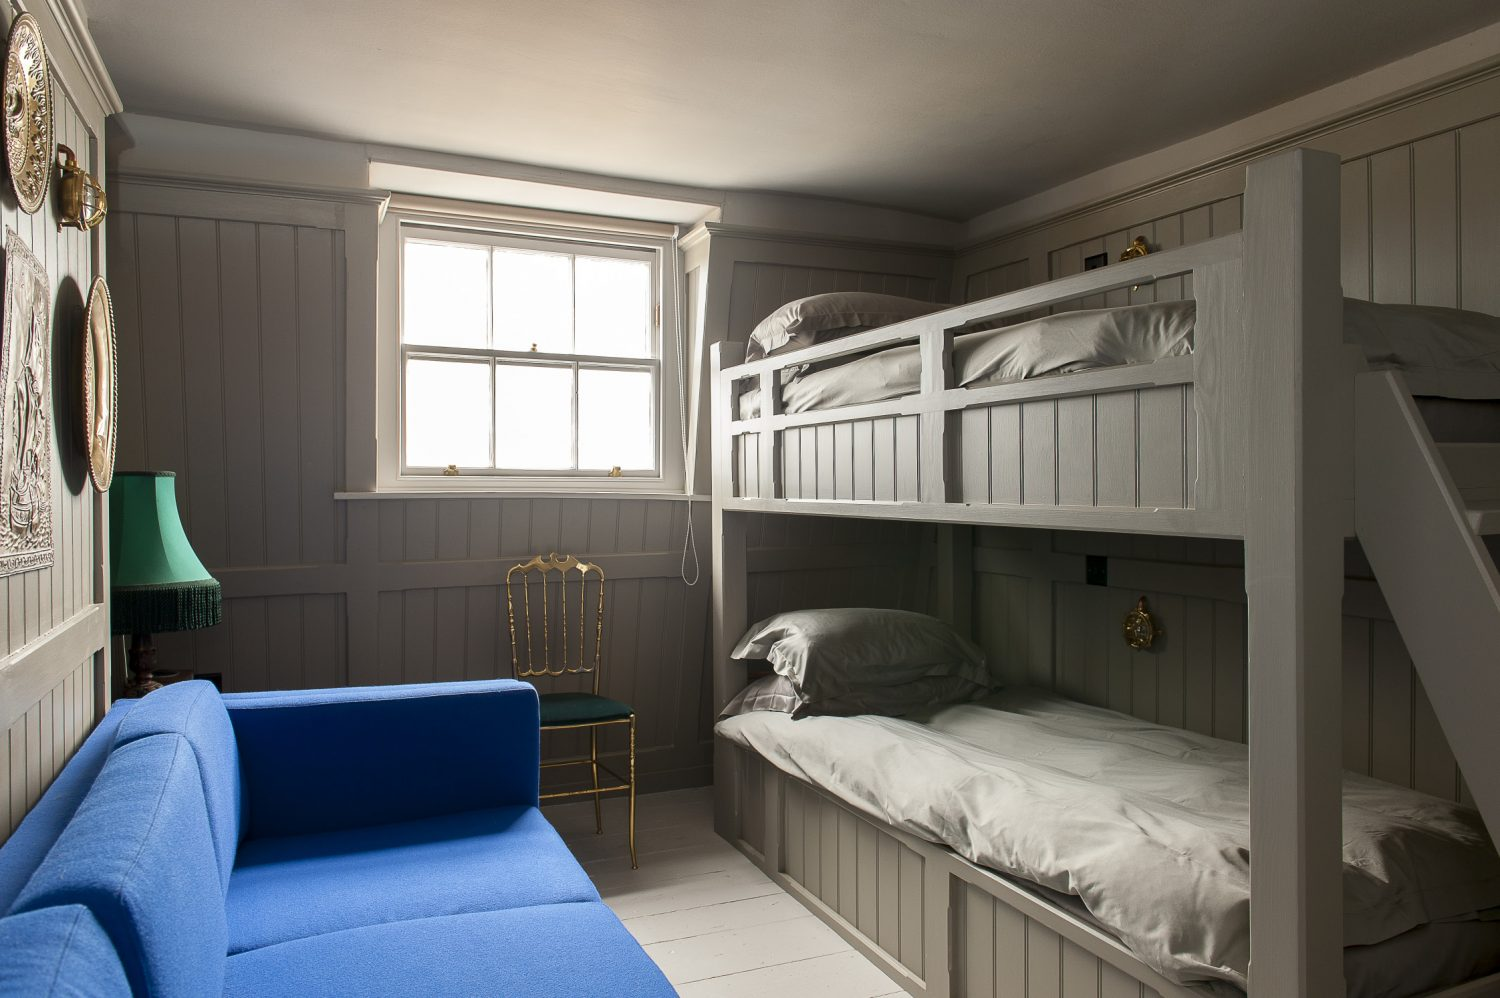 The Crow's Nest's bunk bed den features a wall of pressed brass plates